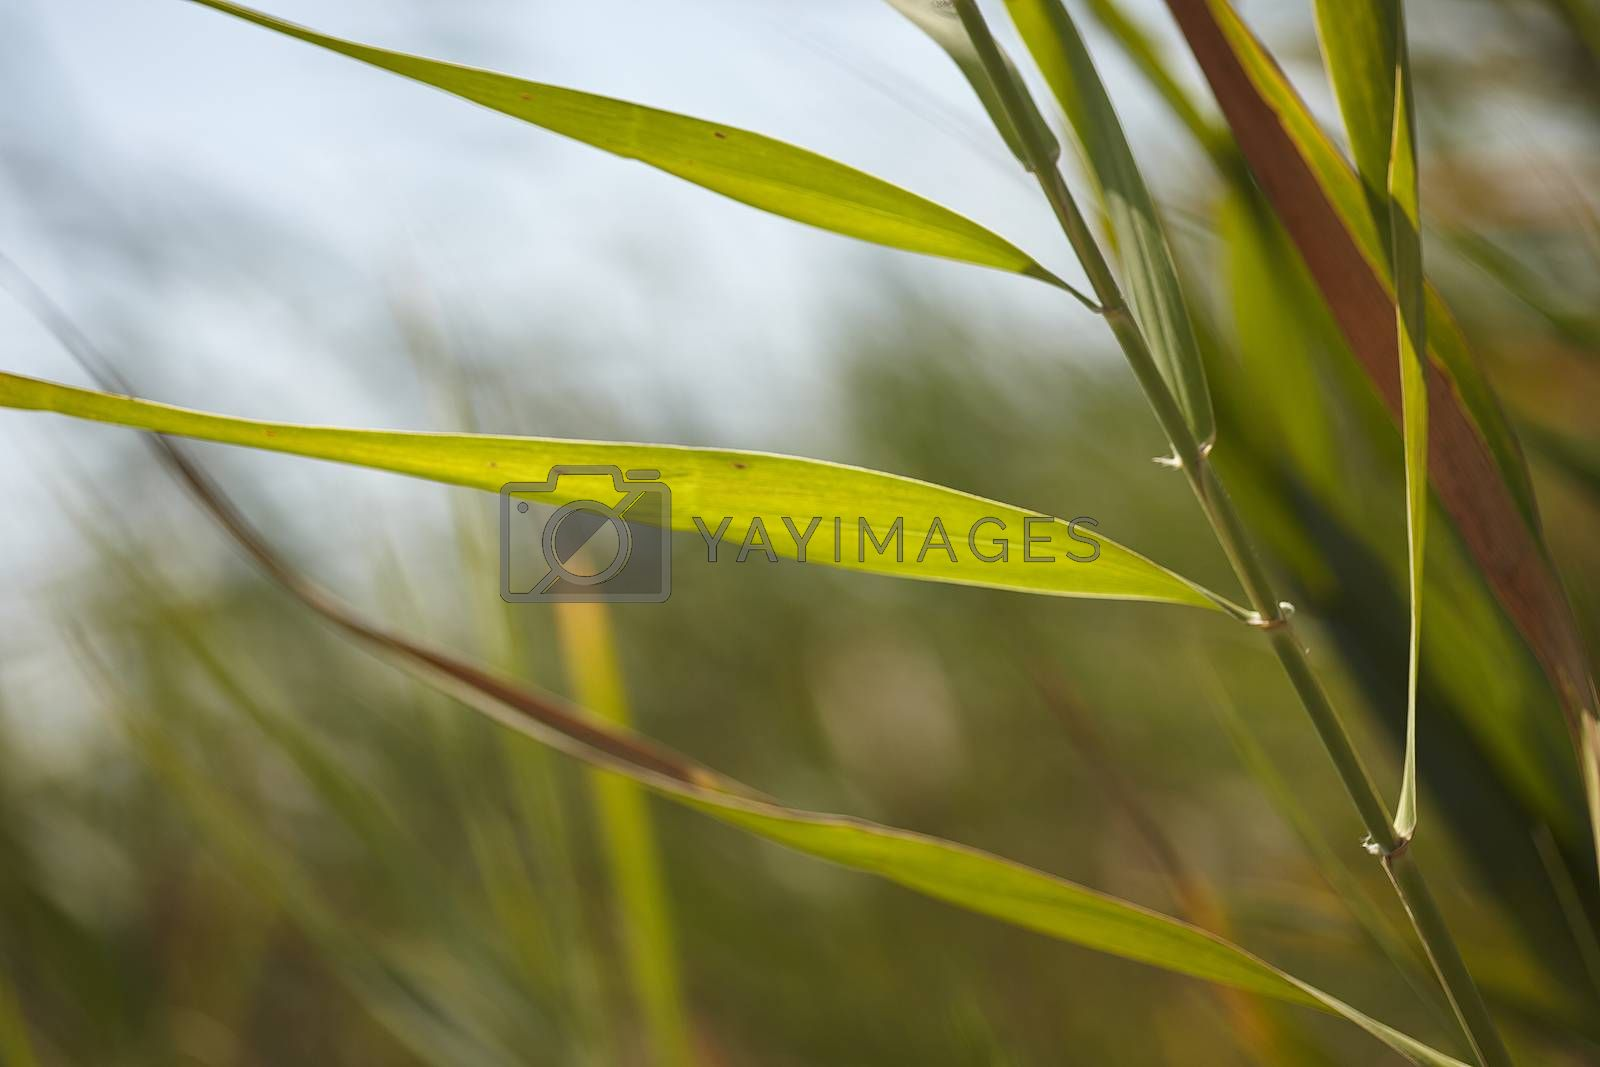 Royalty free image of Blades of grass #4 by pippocarlot